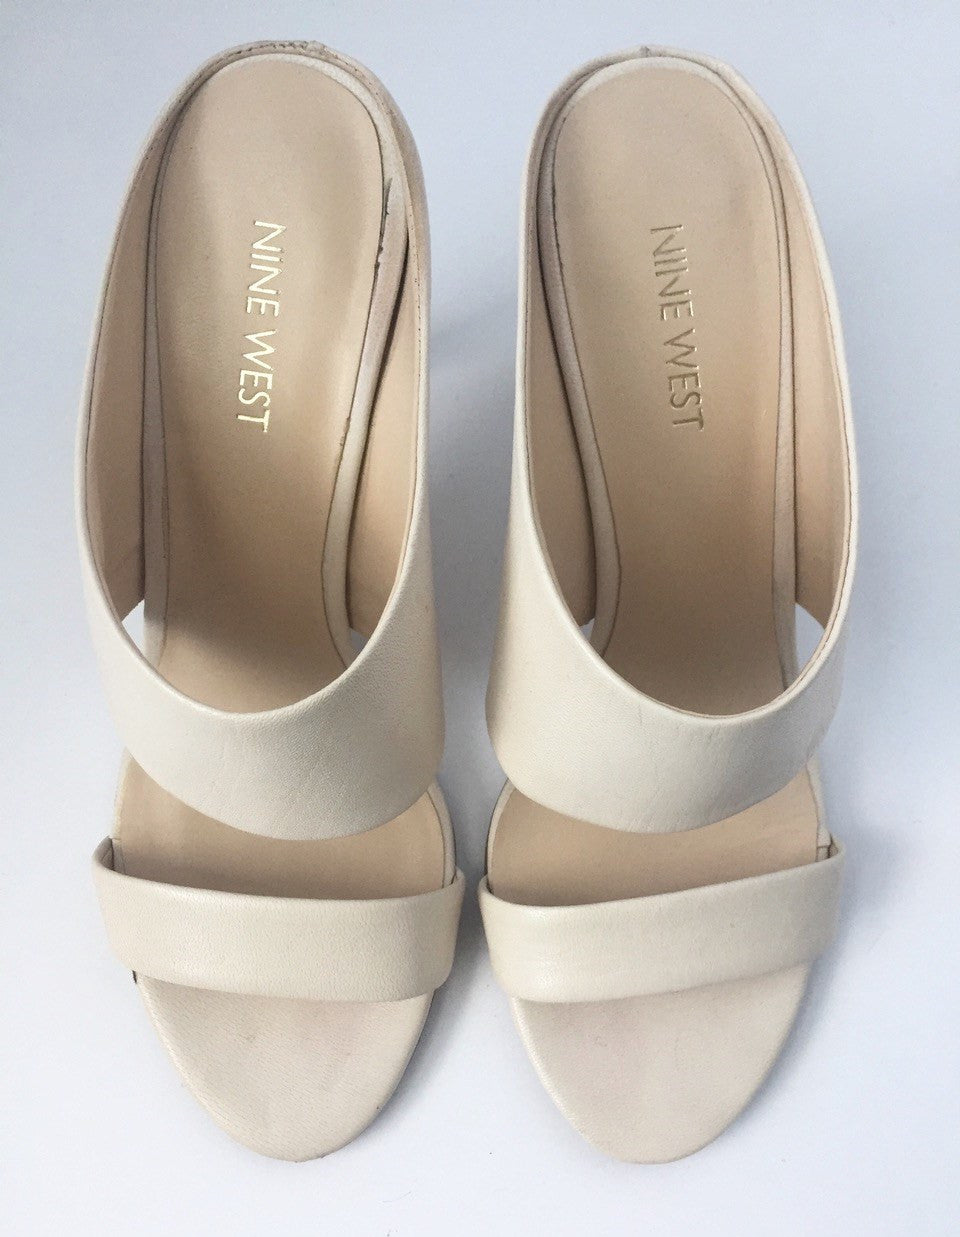 Nine West Cream Leather Open Toe Mule Sandals Size 7